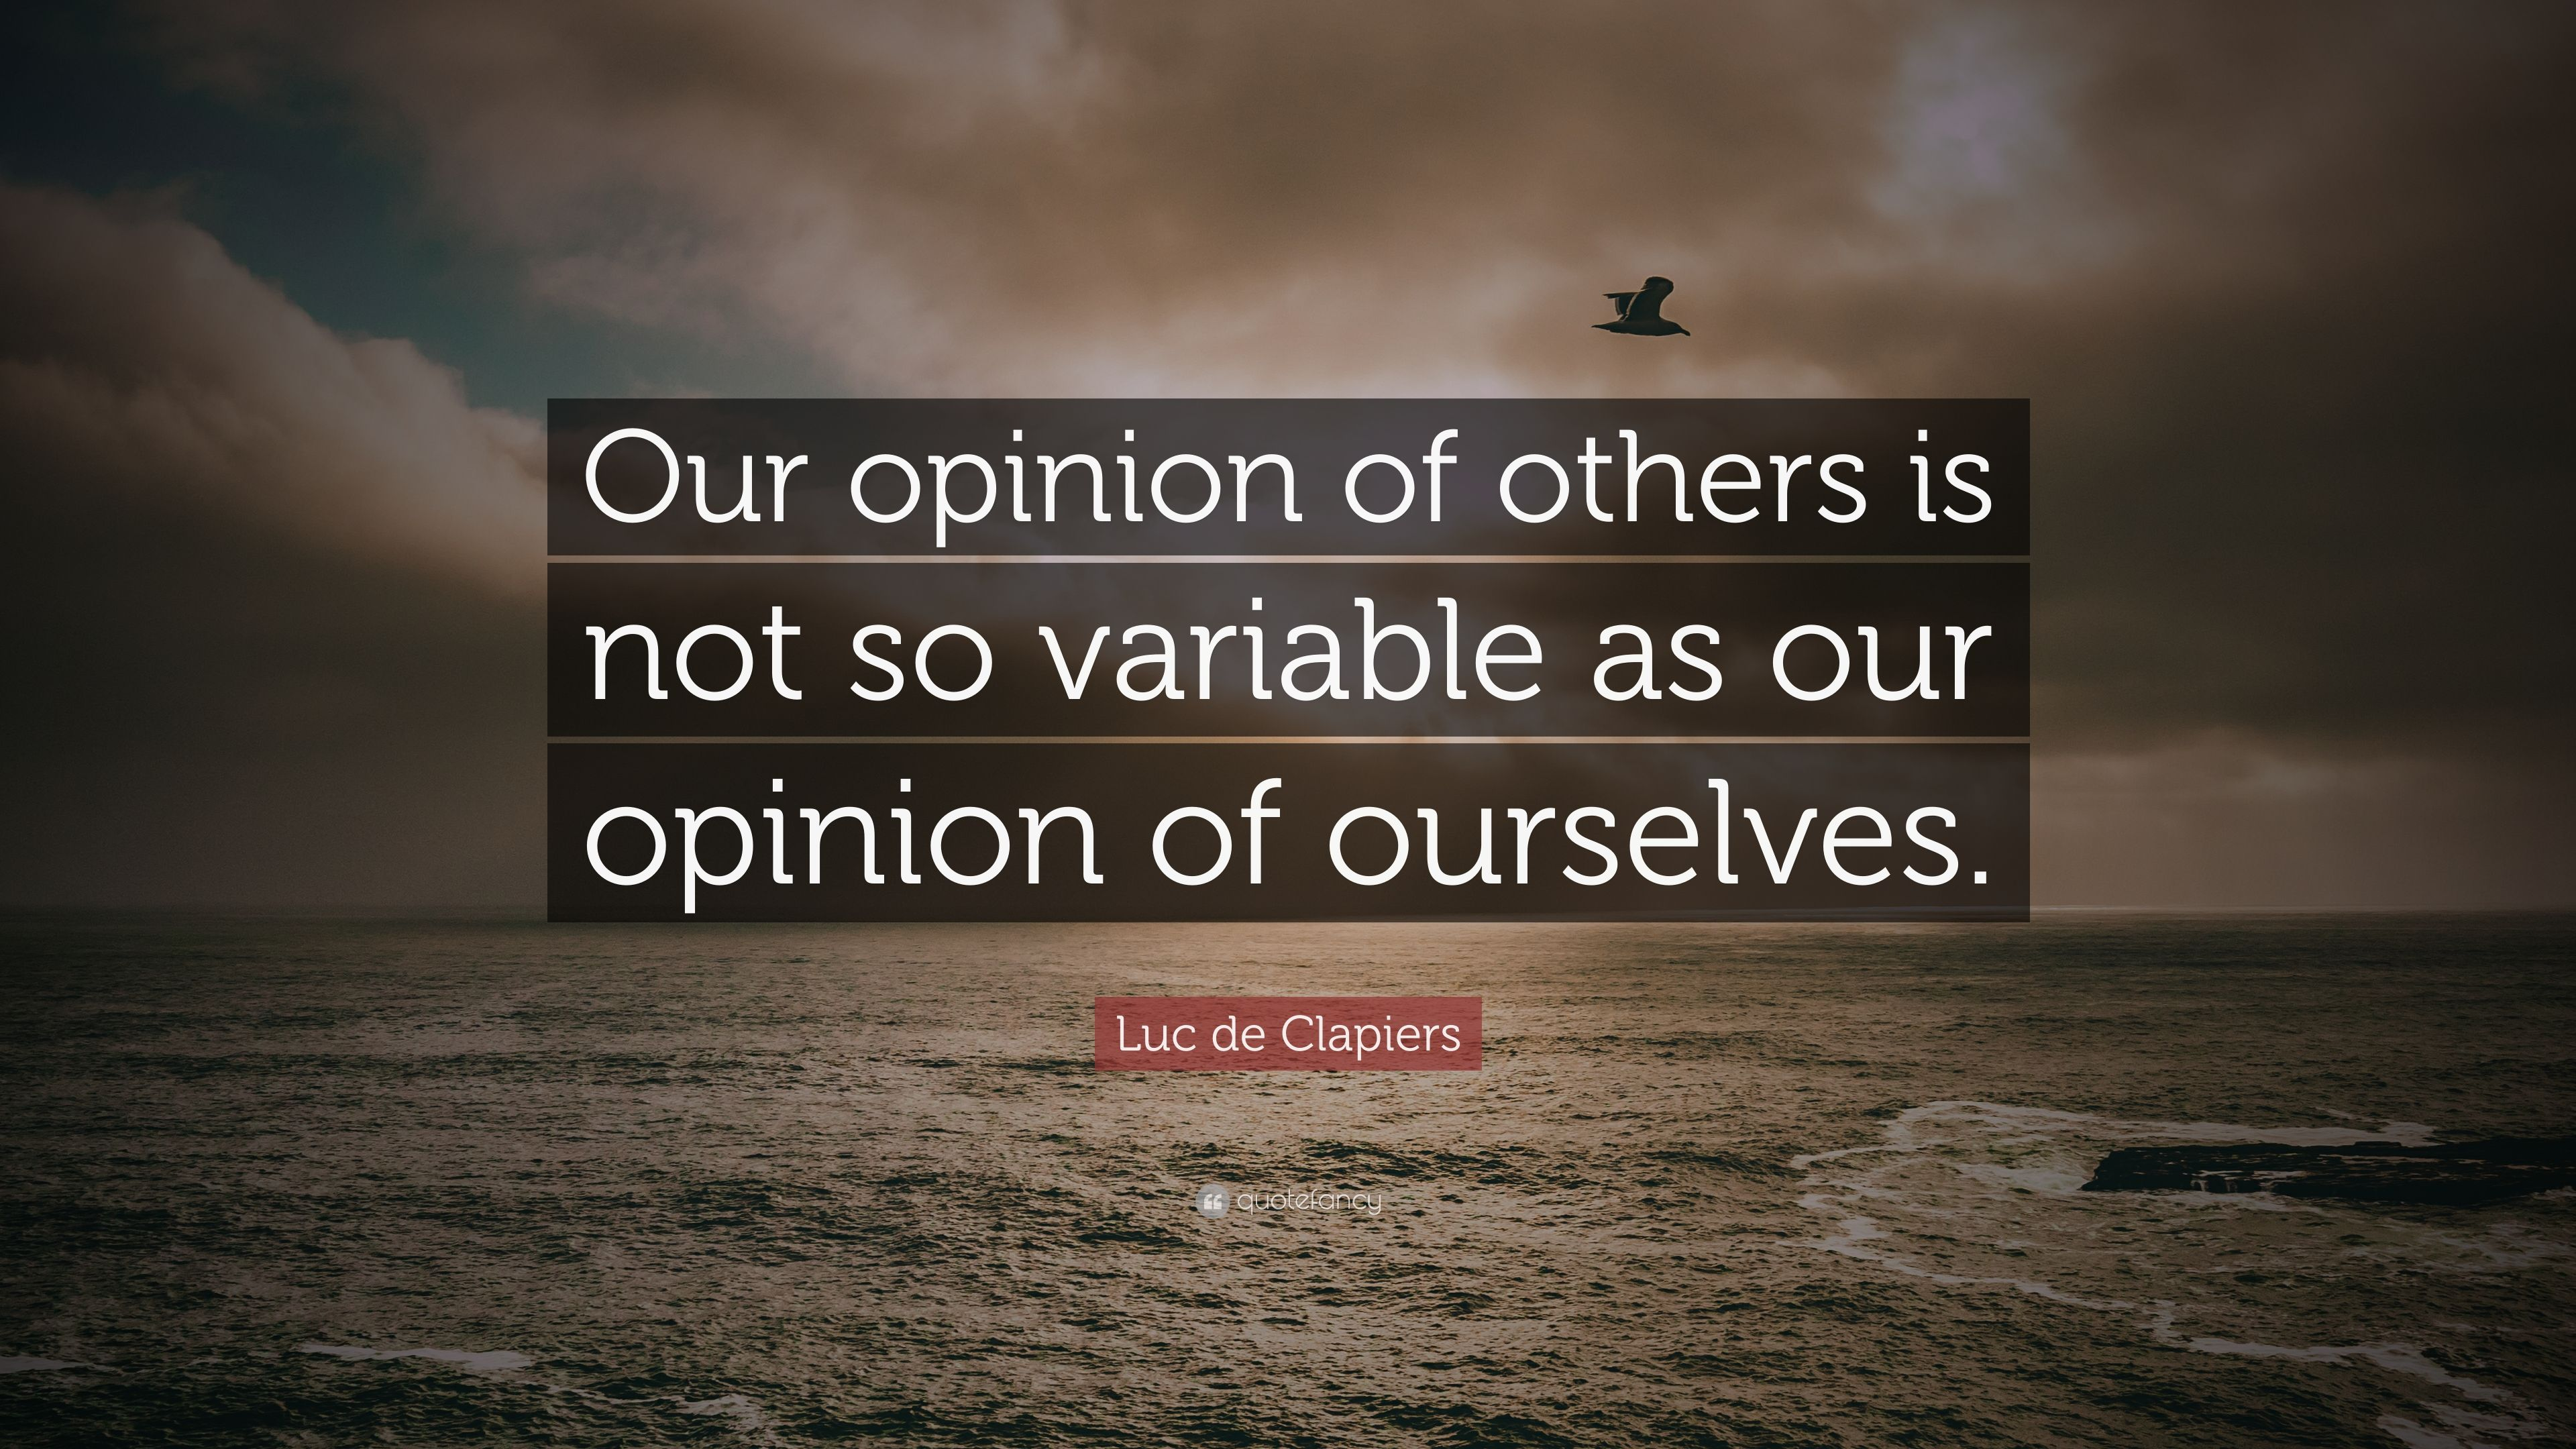 Opinion of others 99